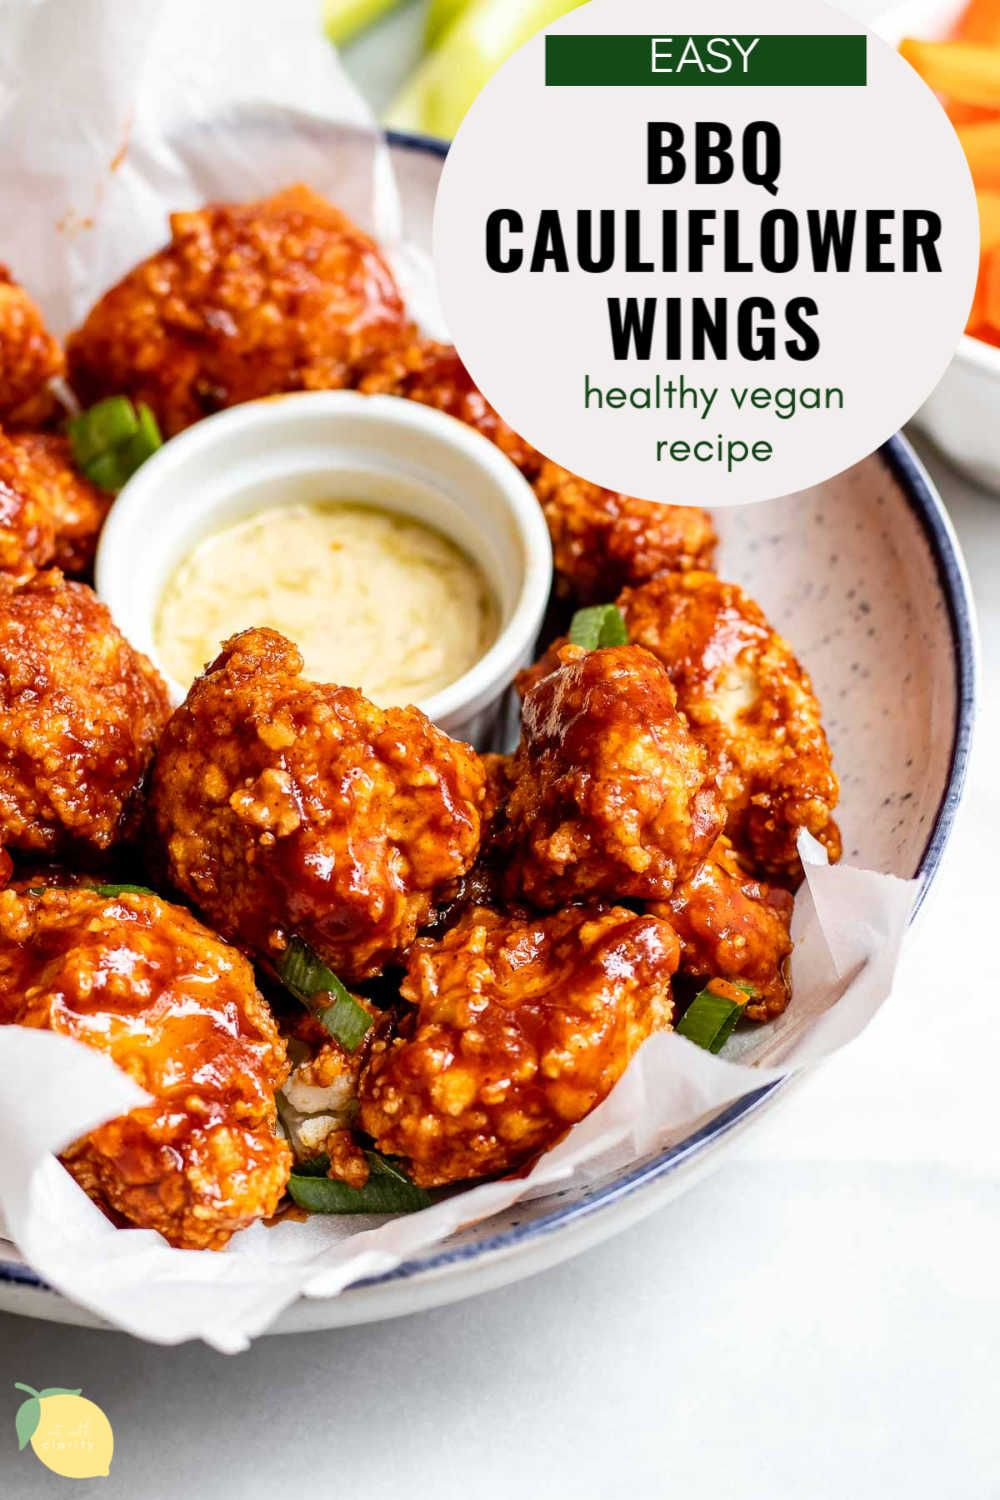 Photo of Baked BBQ Cauliflower Wings | Eat With Clarity Small Bites